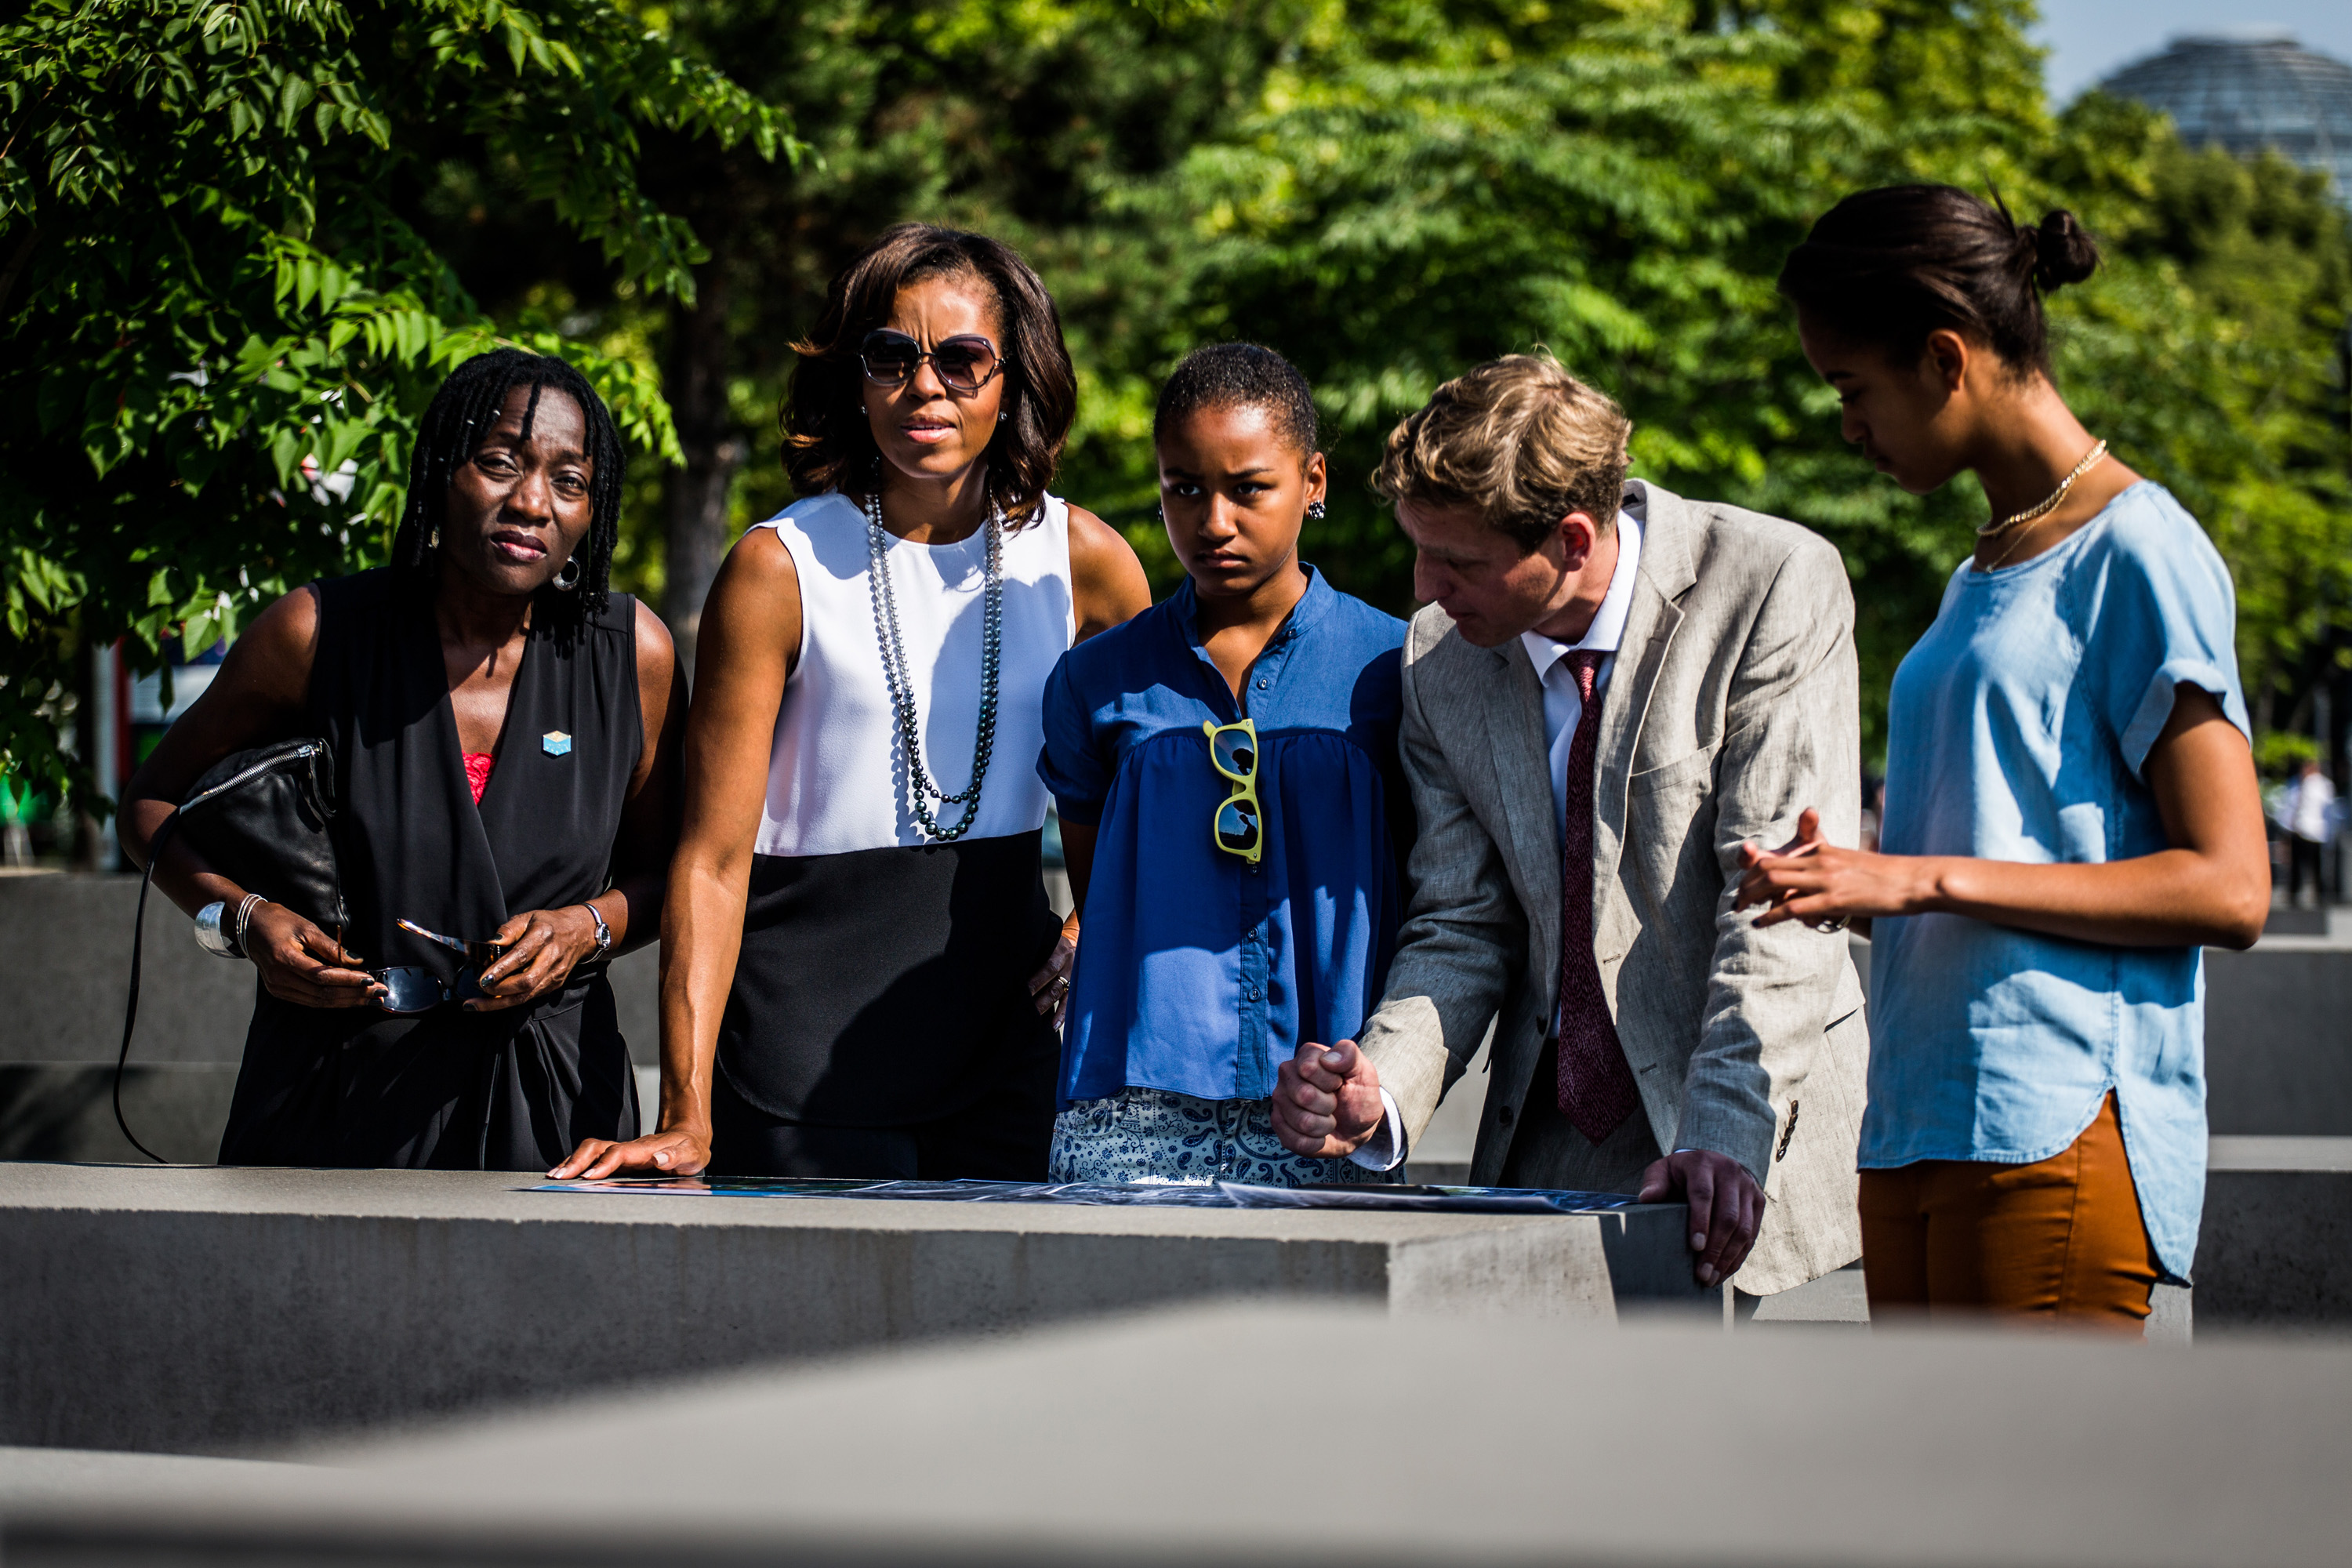 Left to right, President Obama's half-sister Auma Obama; first lady Michelle Obama and her daughter Sacha; Berlin Holocaust memorial director Uwe Neumaerker; and Michele Obama's daughter Malia at the Holocaust memorial, June 19, 2013. (Marco Priske / Stiftung Denkmal)